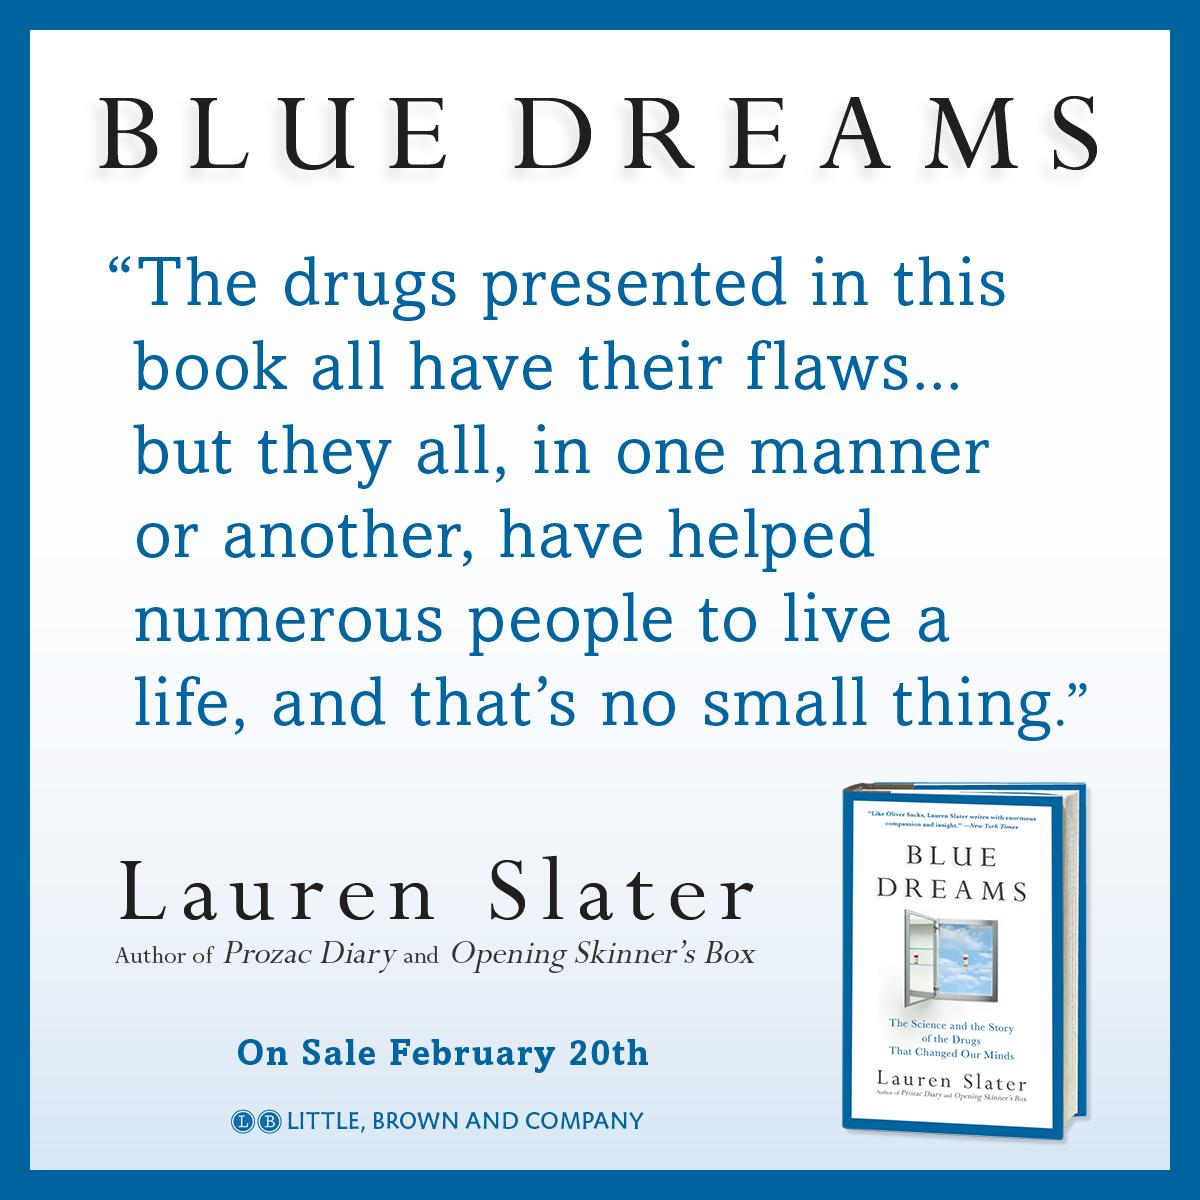 The Science and the Story of the Drugs that Changed Our Minds Blue Dreams